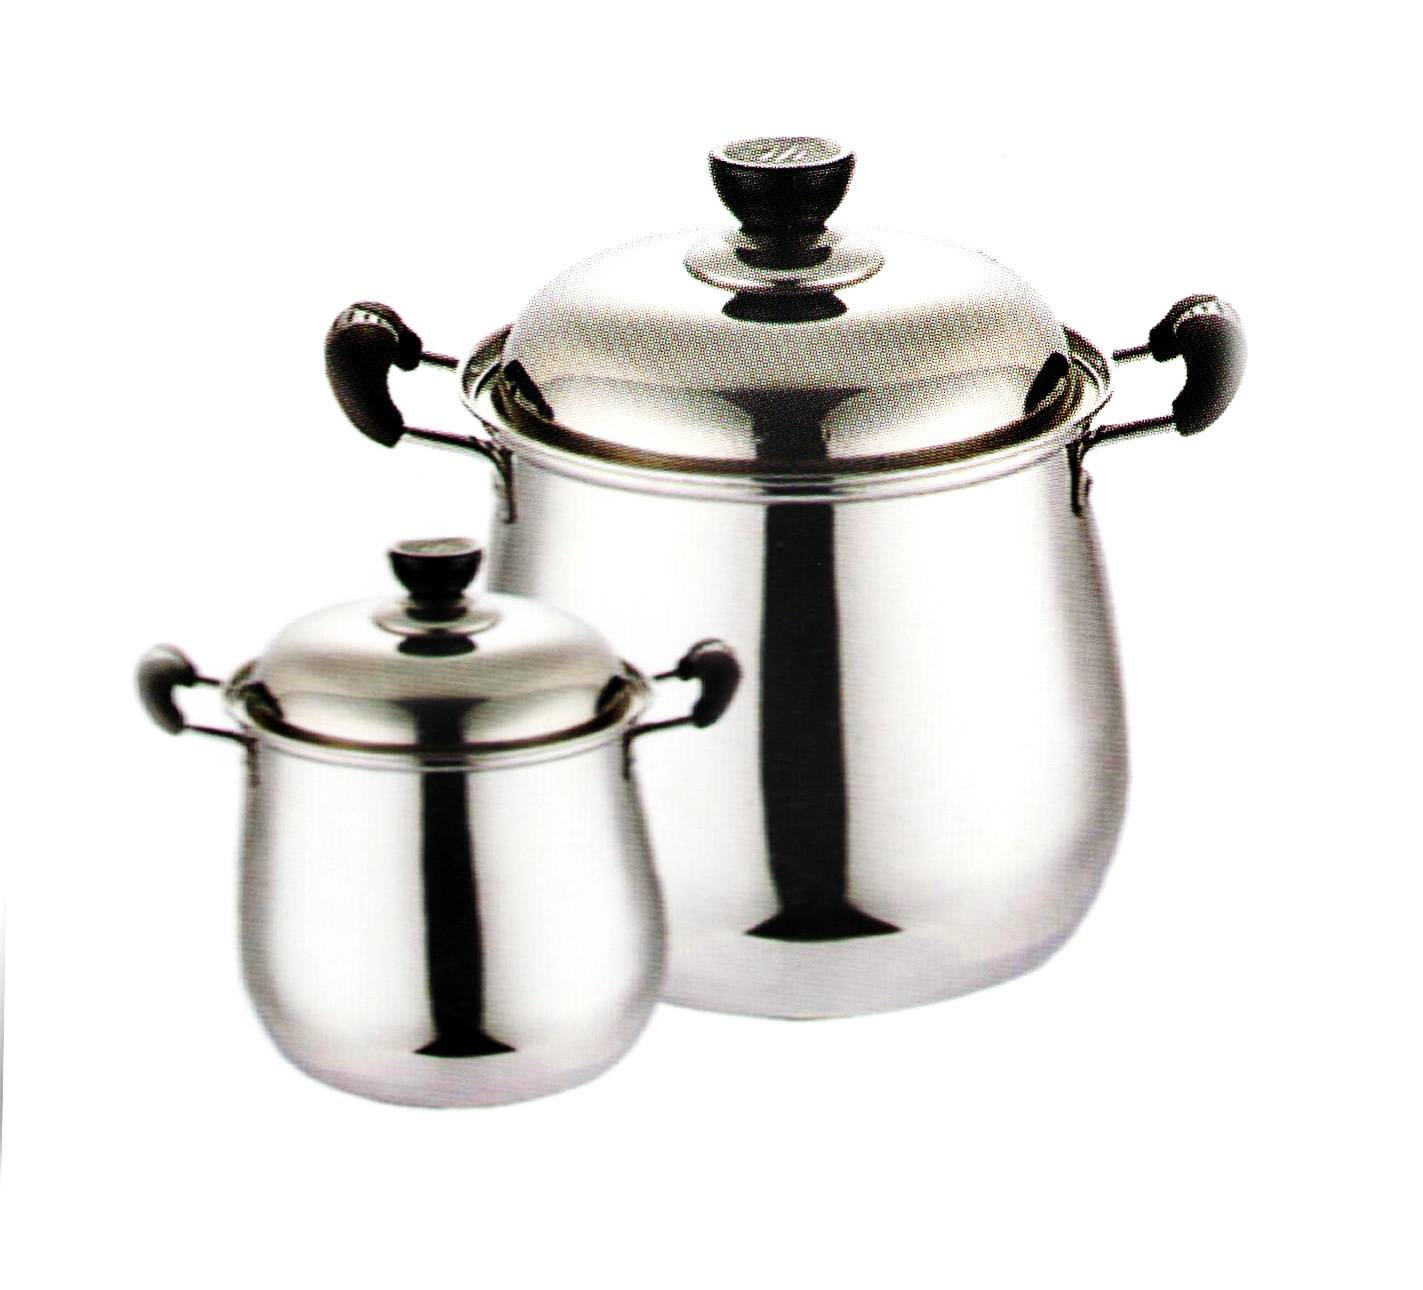 Home Appliance Stainless Steel Cookware Set Cooking Pot / Soup Pot Cp015